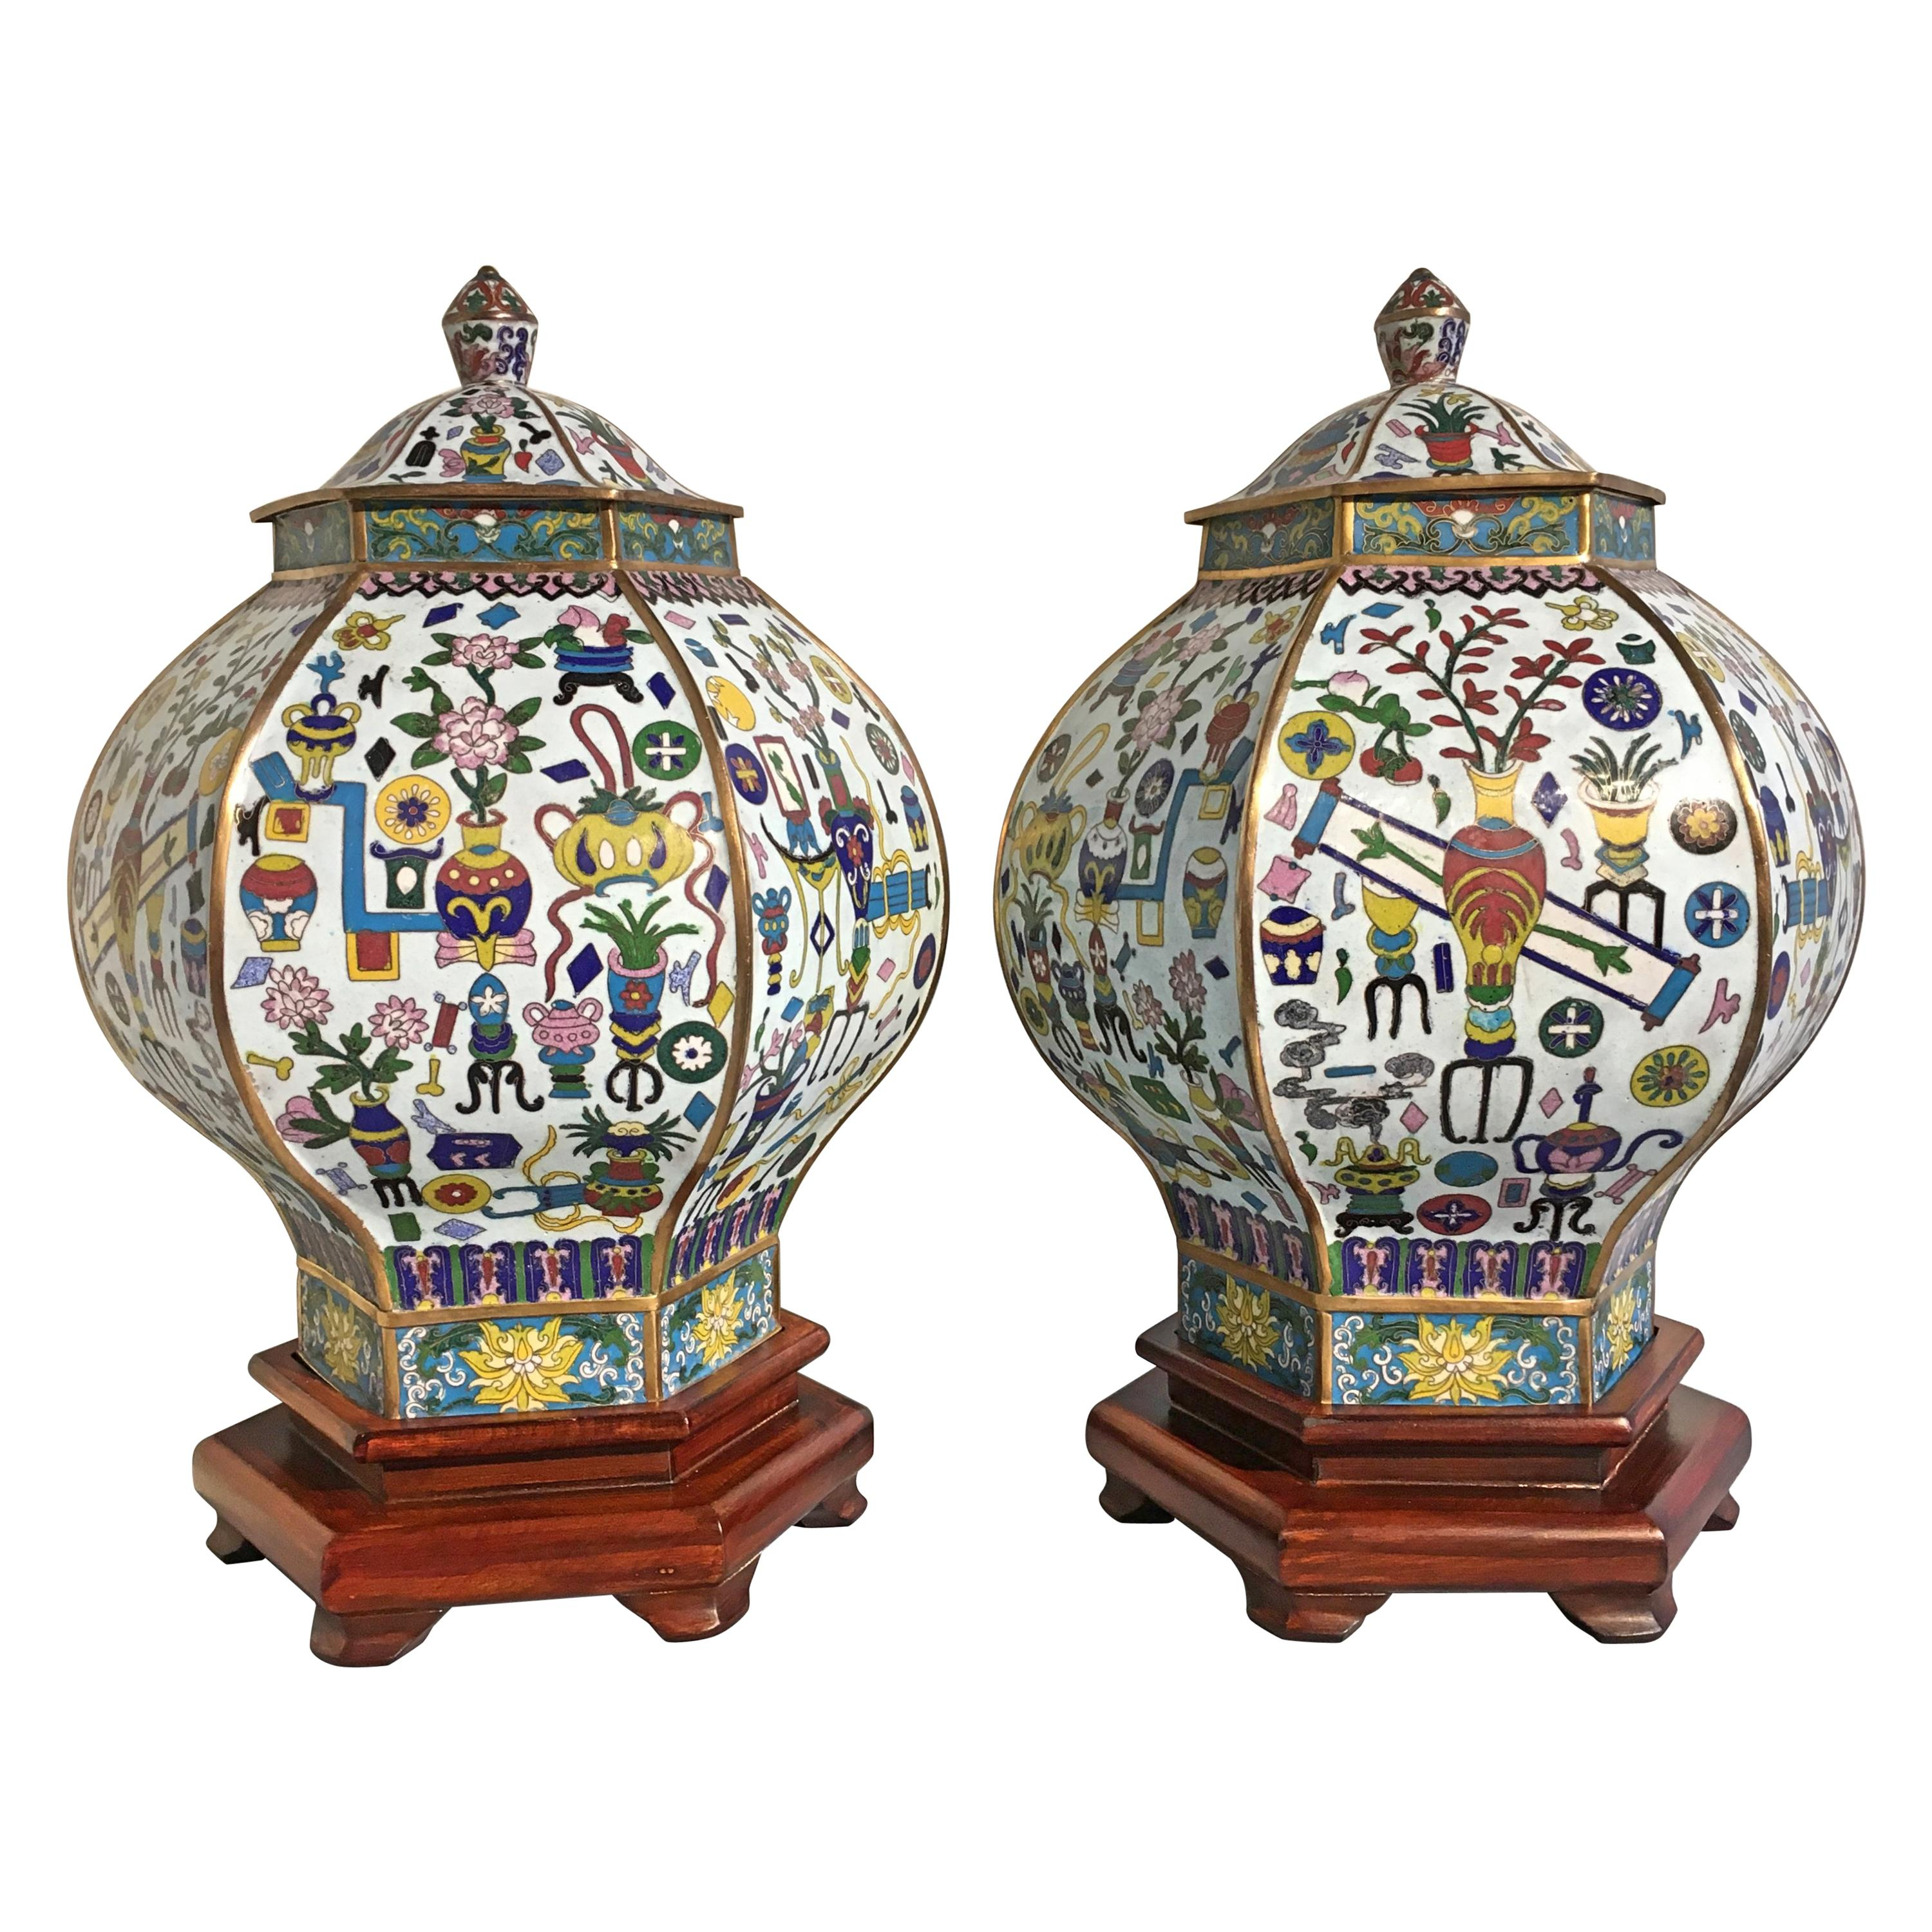 Pair of Vintage Chinese White Cloisonné Hexagonal Covered Vases, 1950s